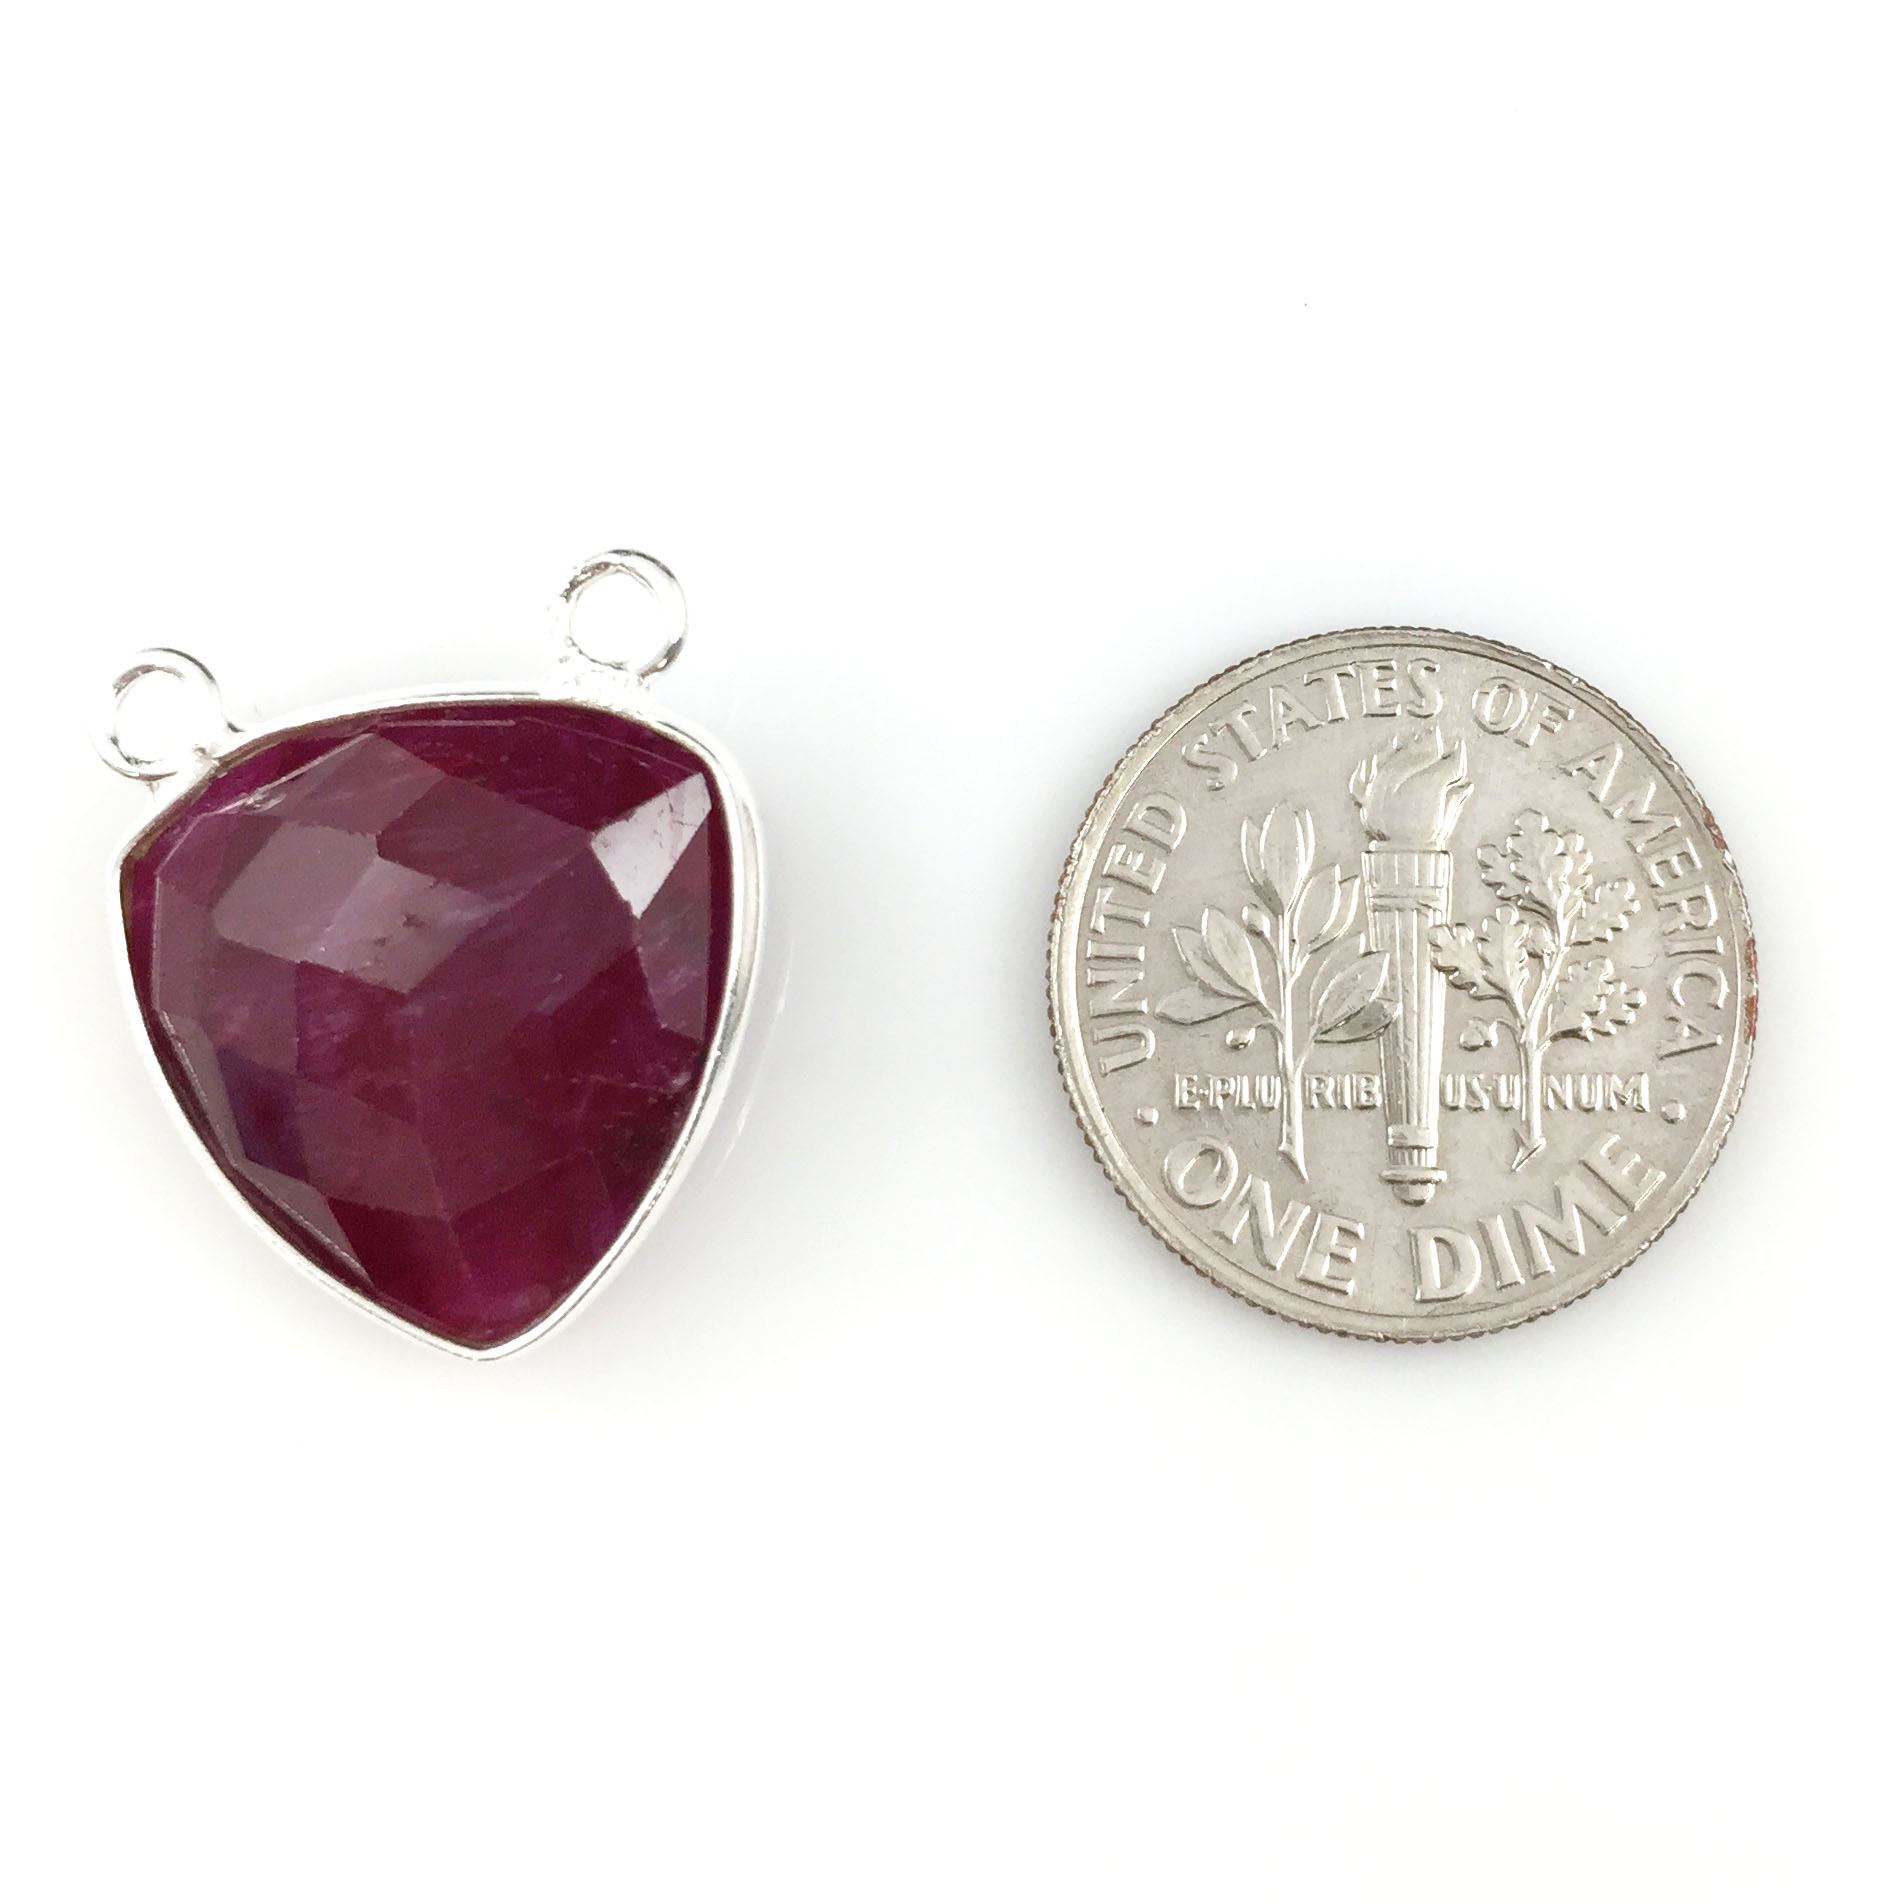 Bezel Gemstone Connector Pendant - Ruby Dyed - Sterling Silver - Small Trillion Shaped Faceted - 15mm - 1 piece